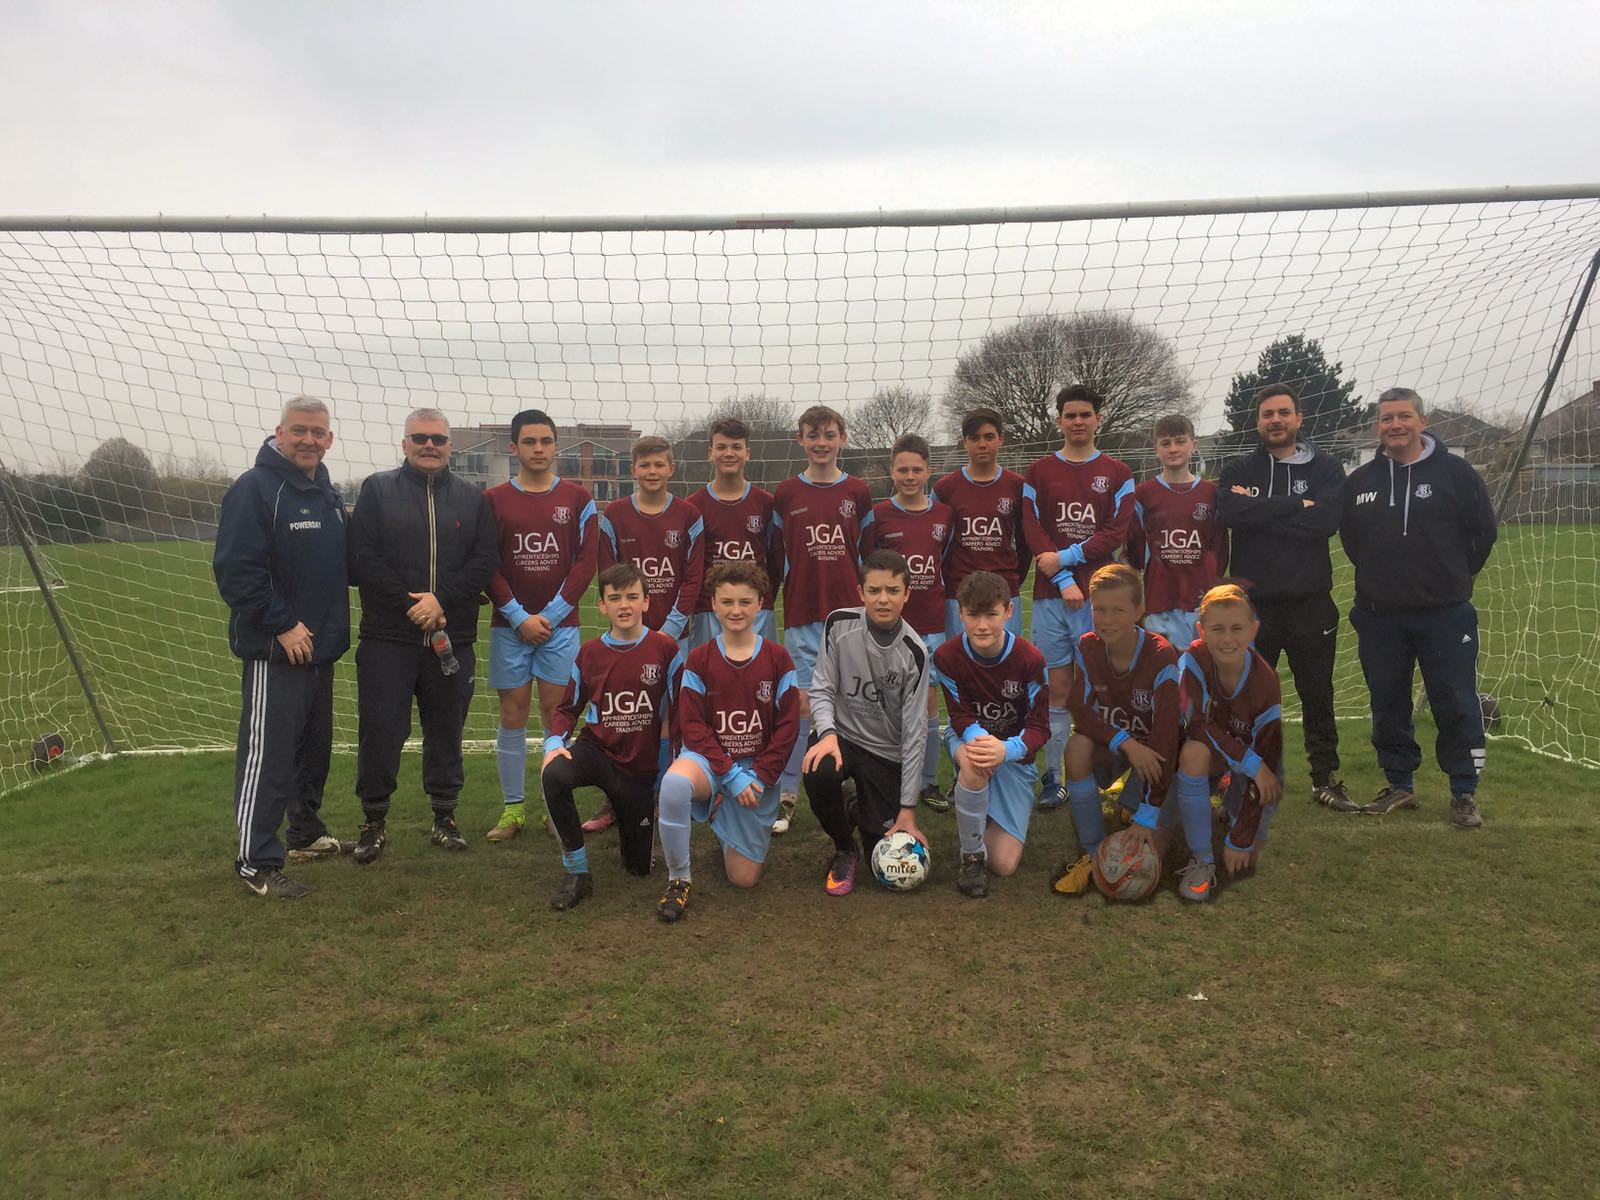 The story of the route our Under 14As team took to reach this Sunday's County Cup Final